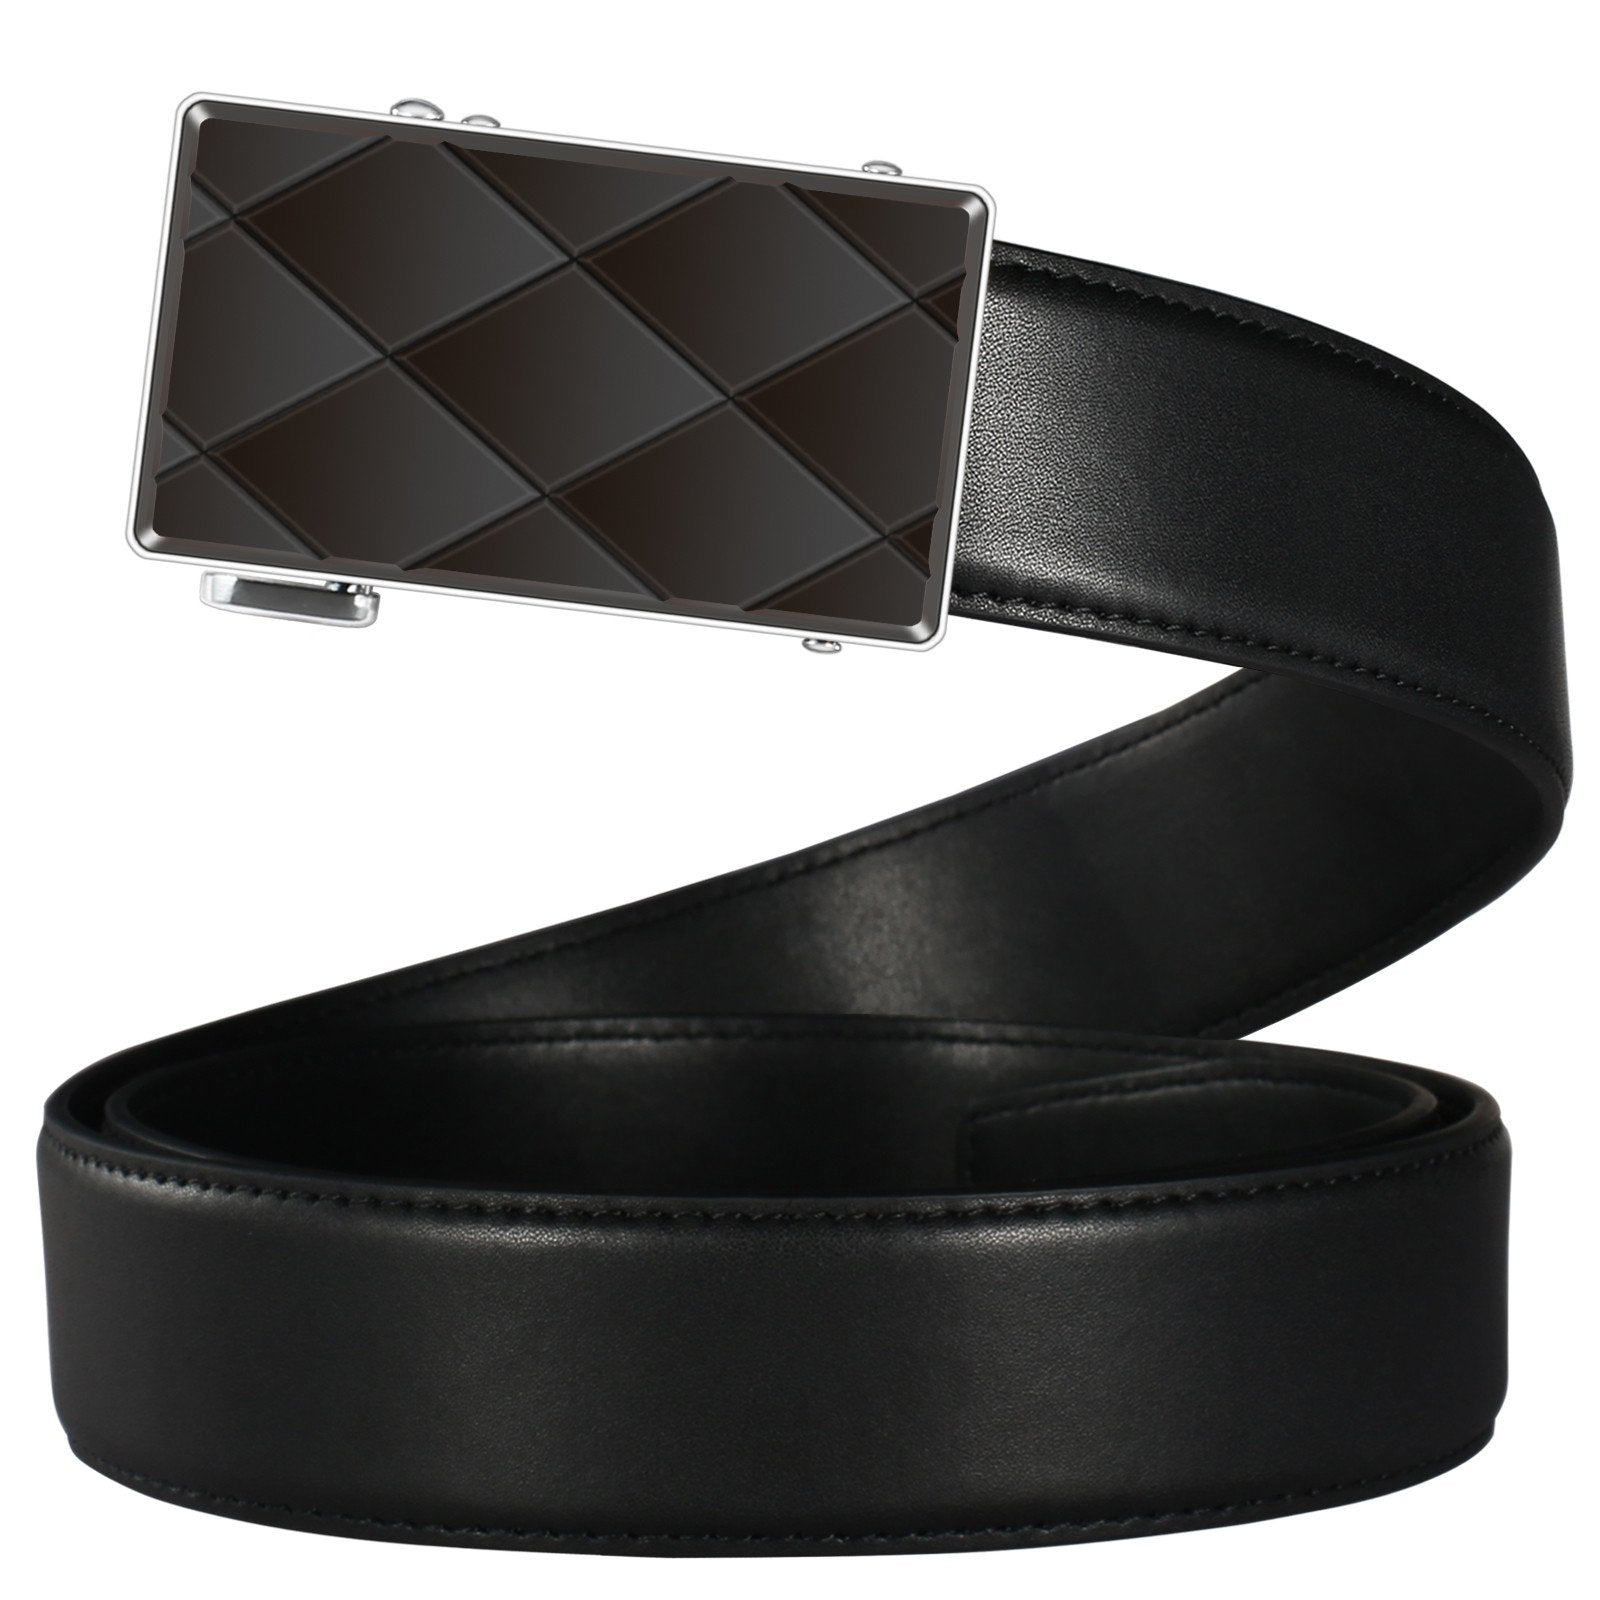 Ratchet Belts For Men Big And Tall Leather Belts Silver Buckle With 3D Three-Dimensional design